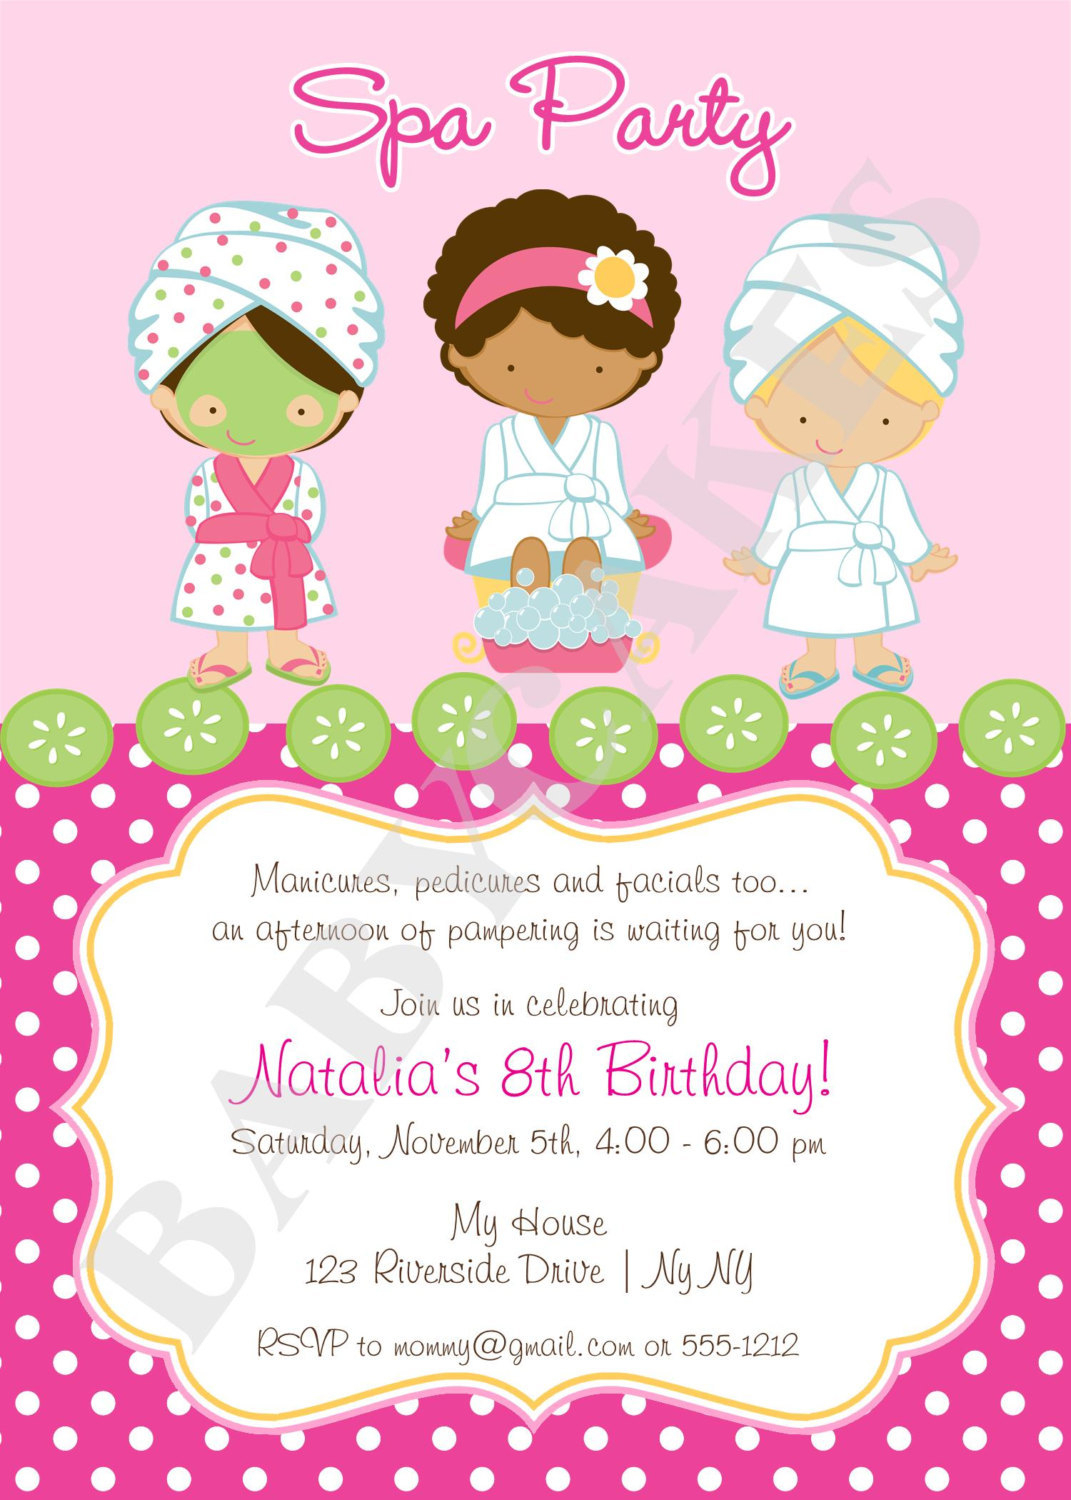 Spa Party Invitation Diy Print Your Own Matching By à Salon Be Happy Invitation